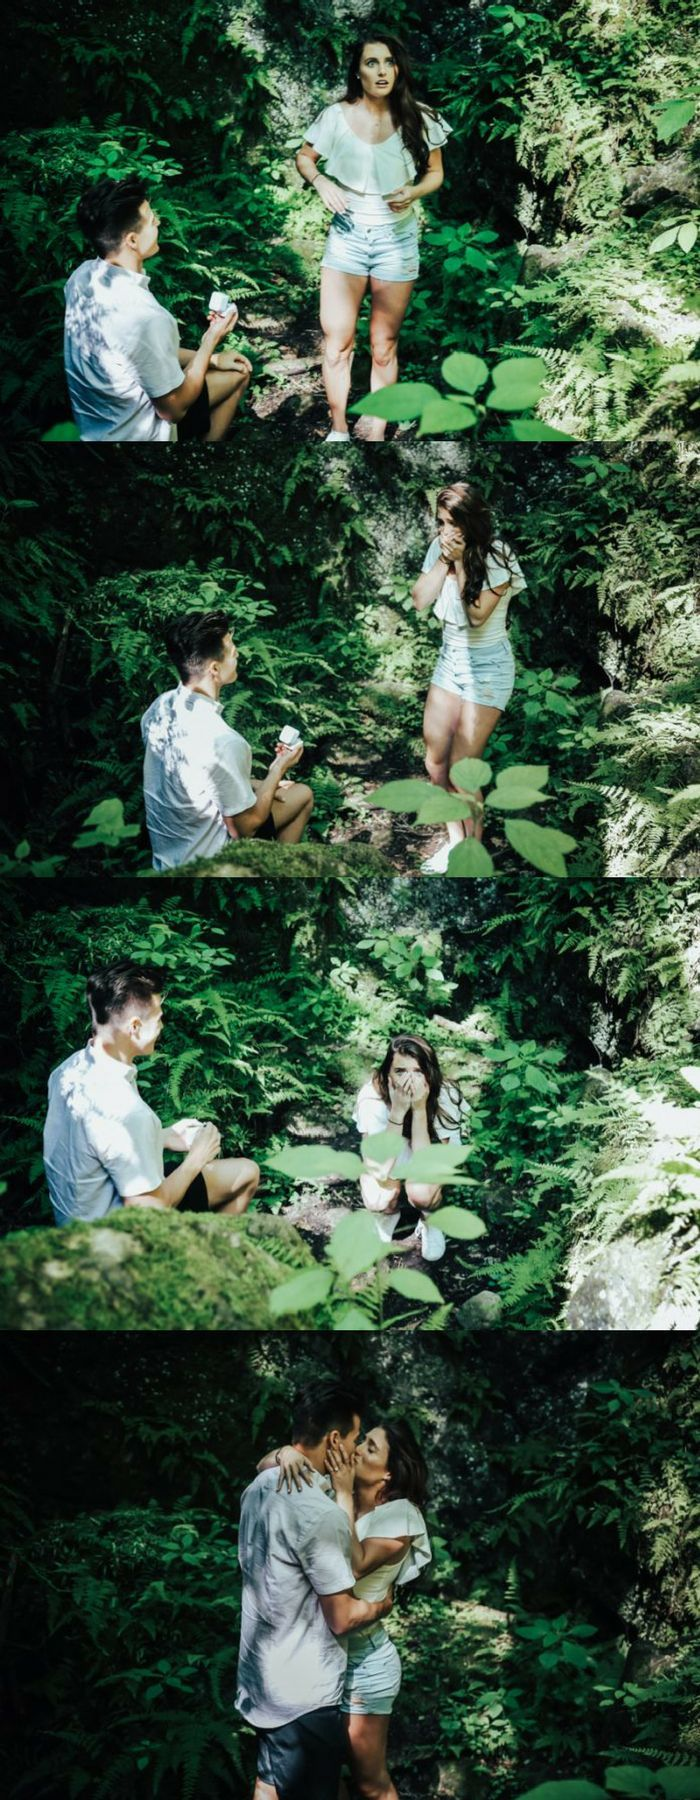 She wanted to visit the place where they had their first date, but she had no idea he would pop the question!